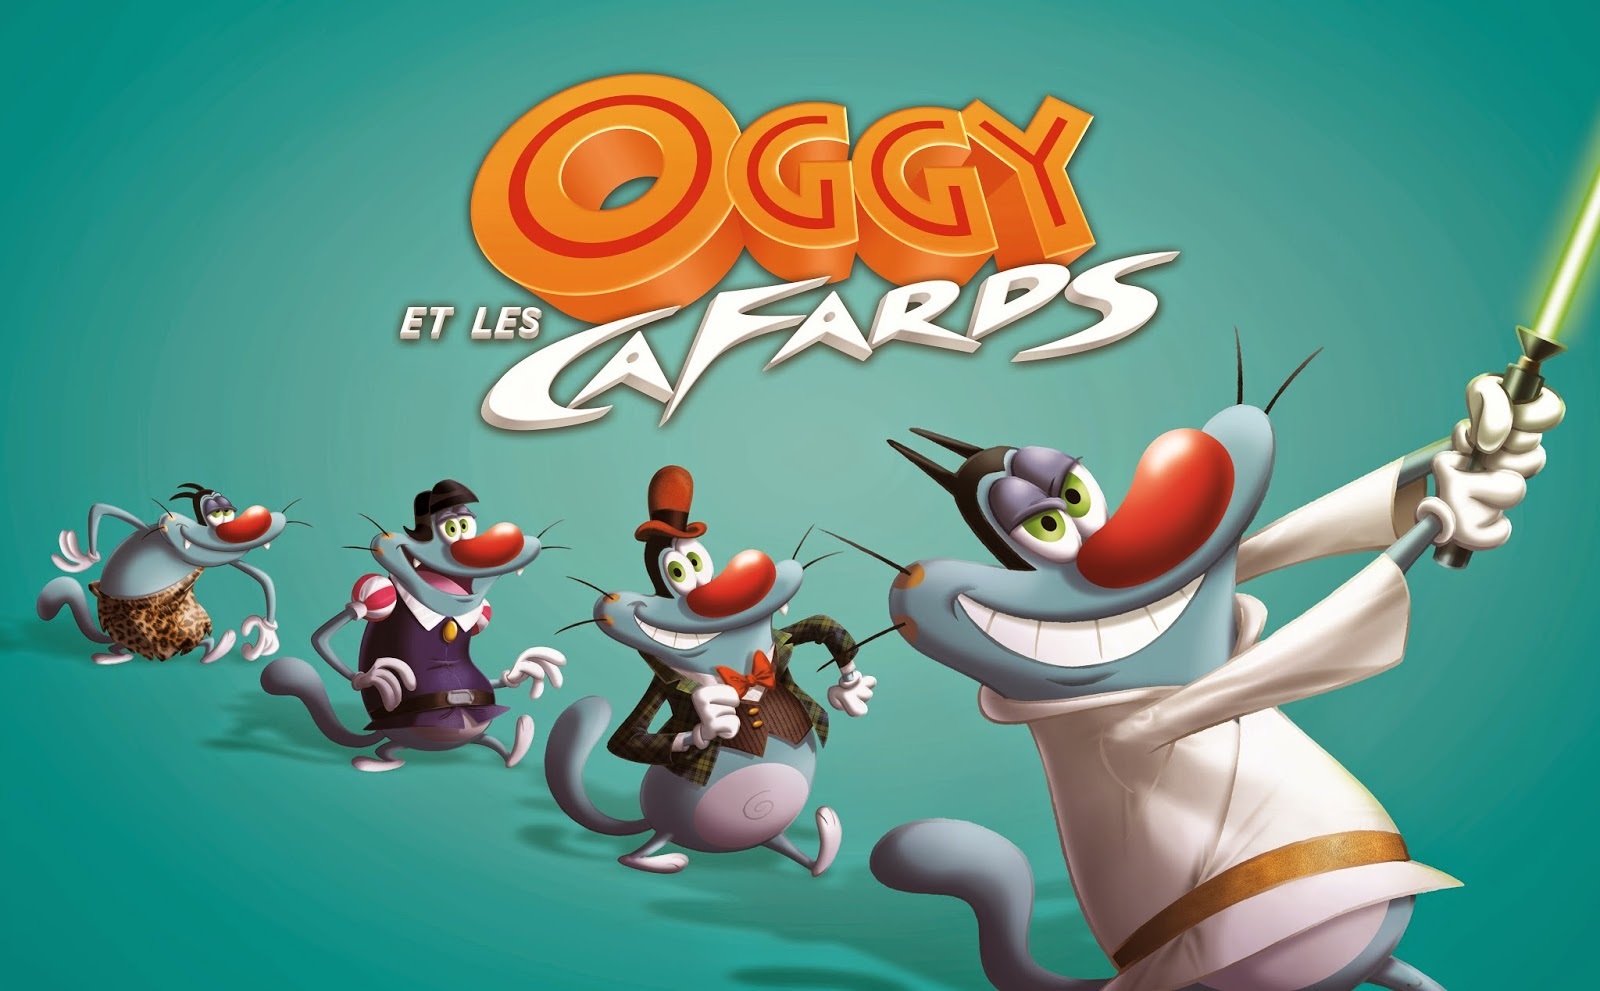 Disney HD Wallpapers: Oggy E As Baratas HD Wallpapers